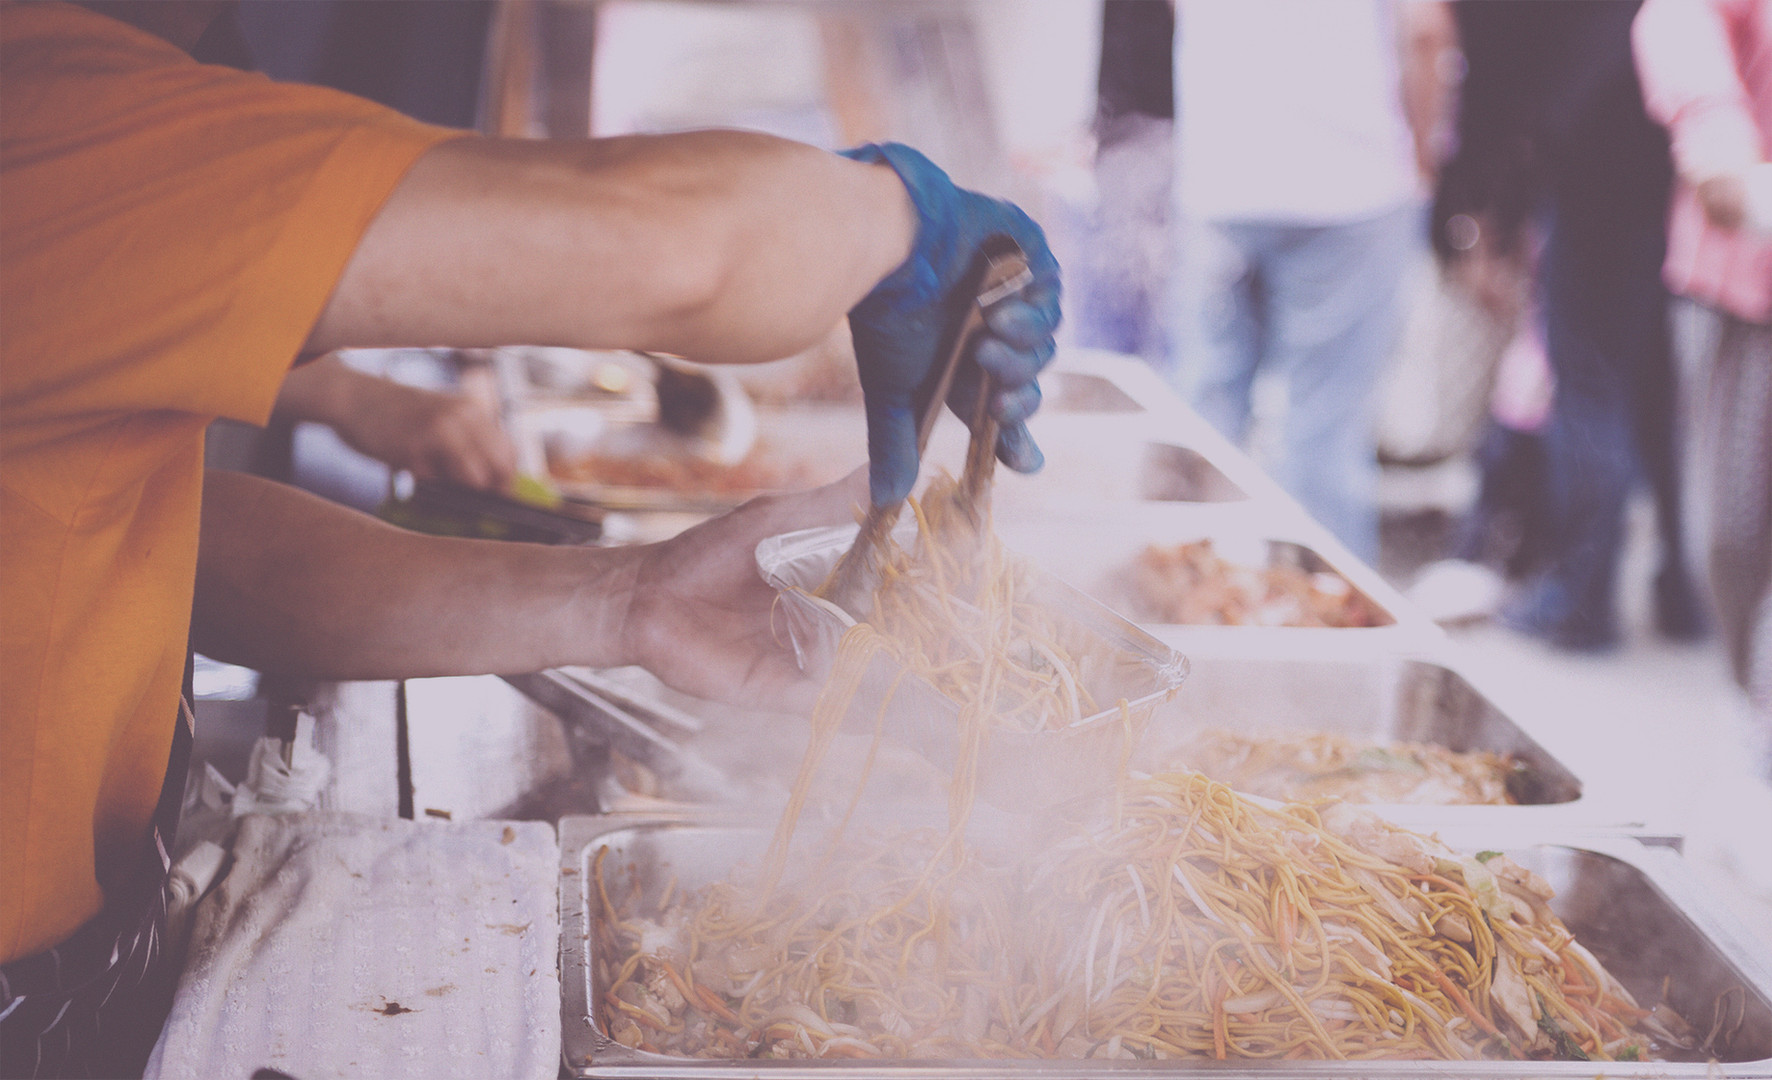 The Street Food City Index: The Top 30 Street Food Cities in the World